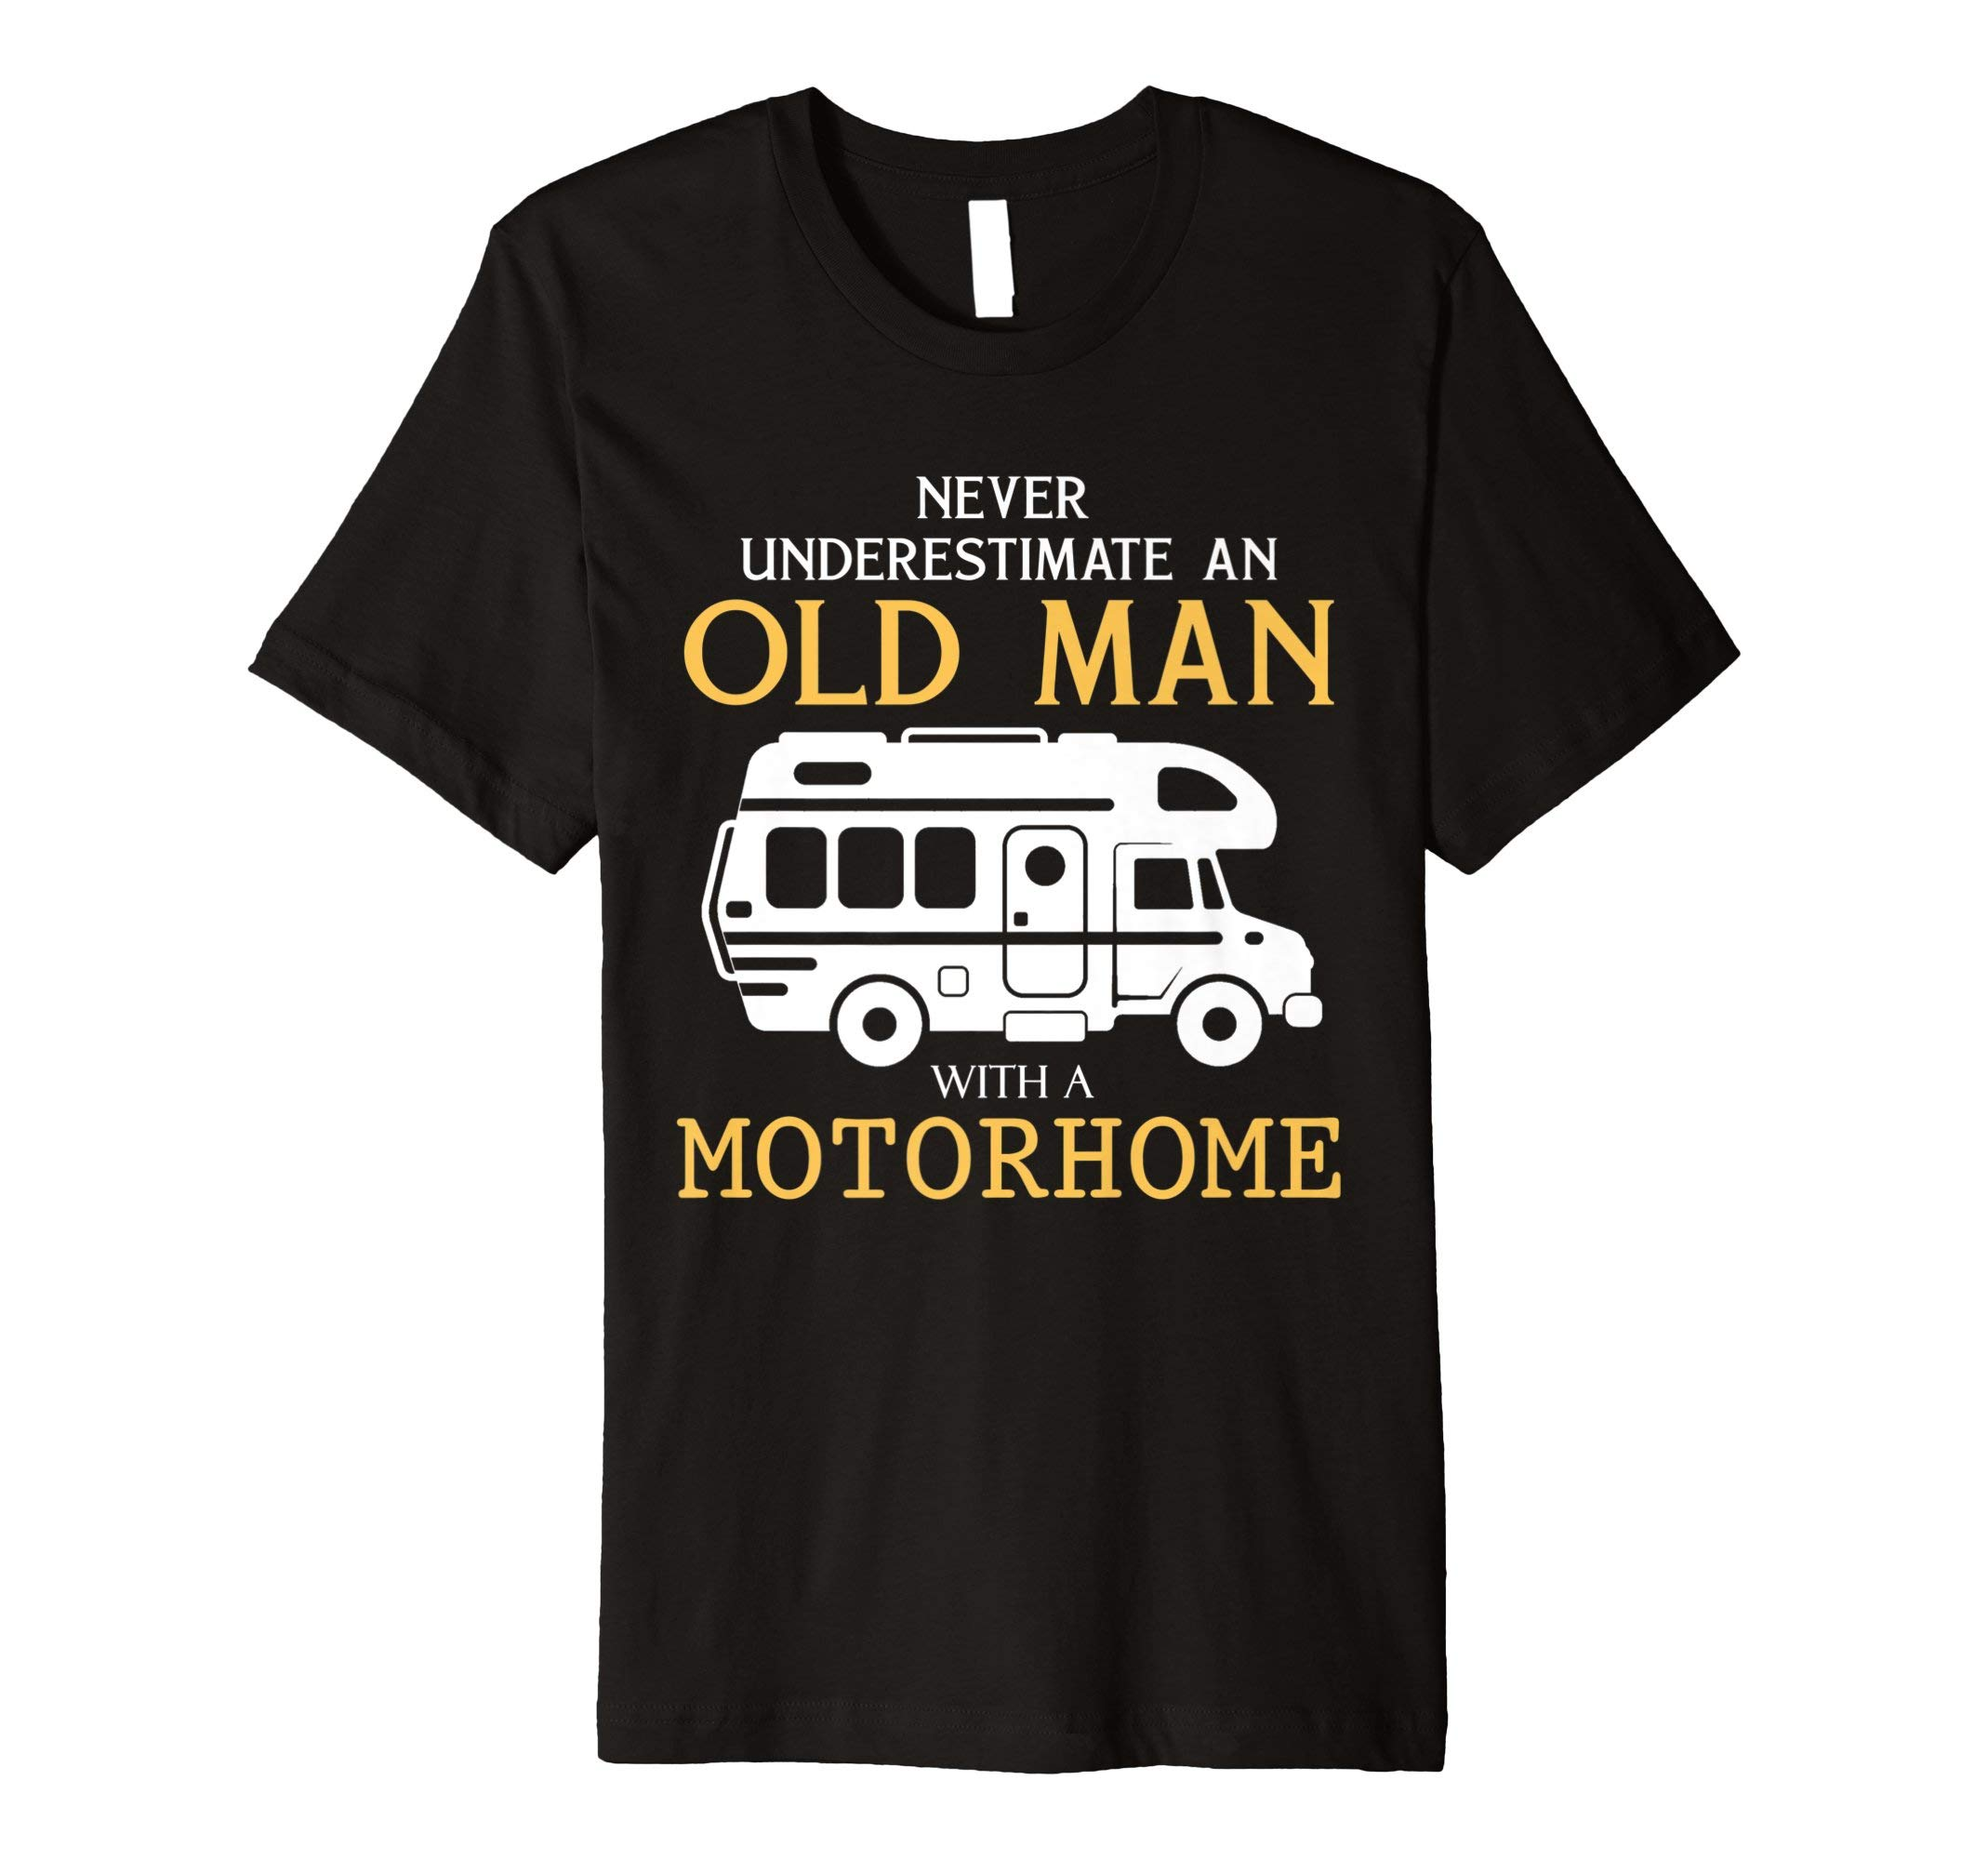 Never underestimate an old man with a motorhome